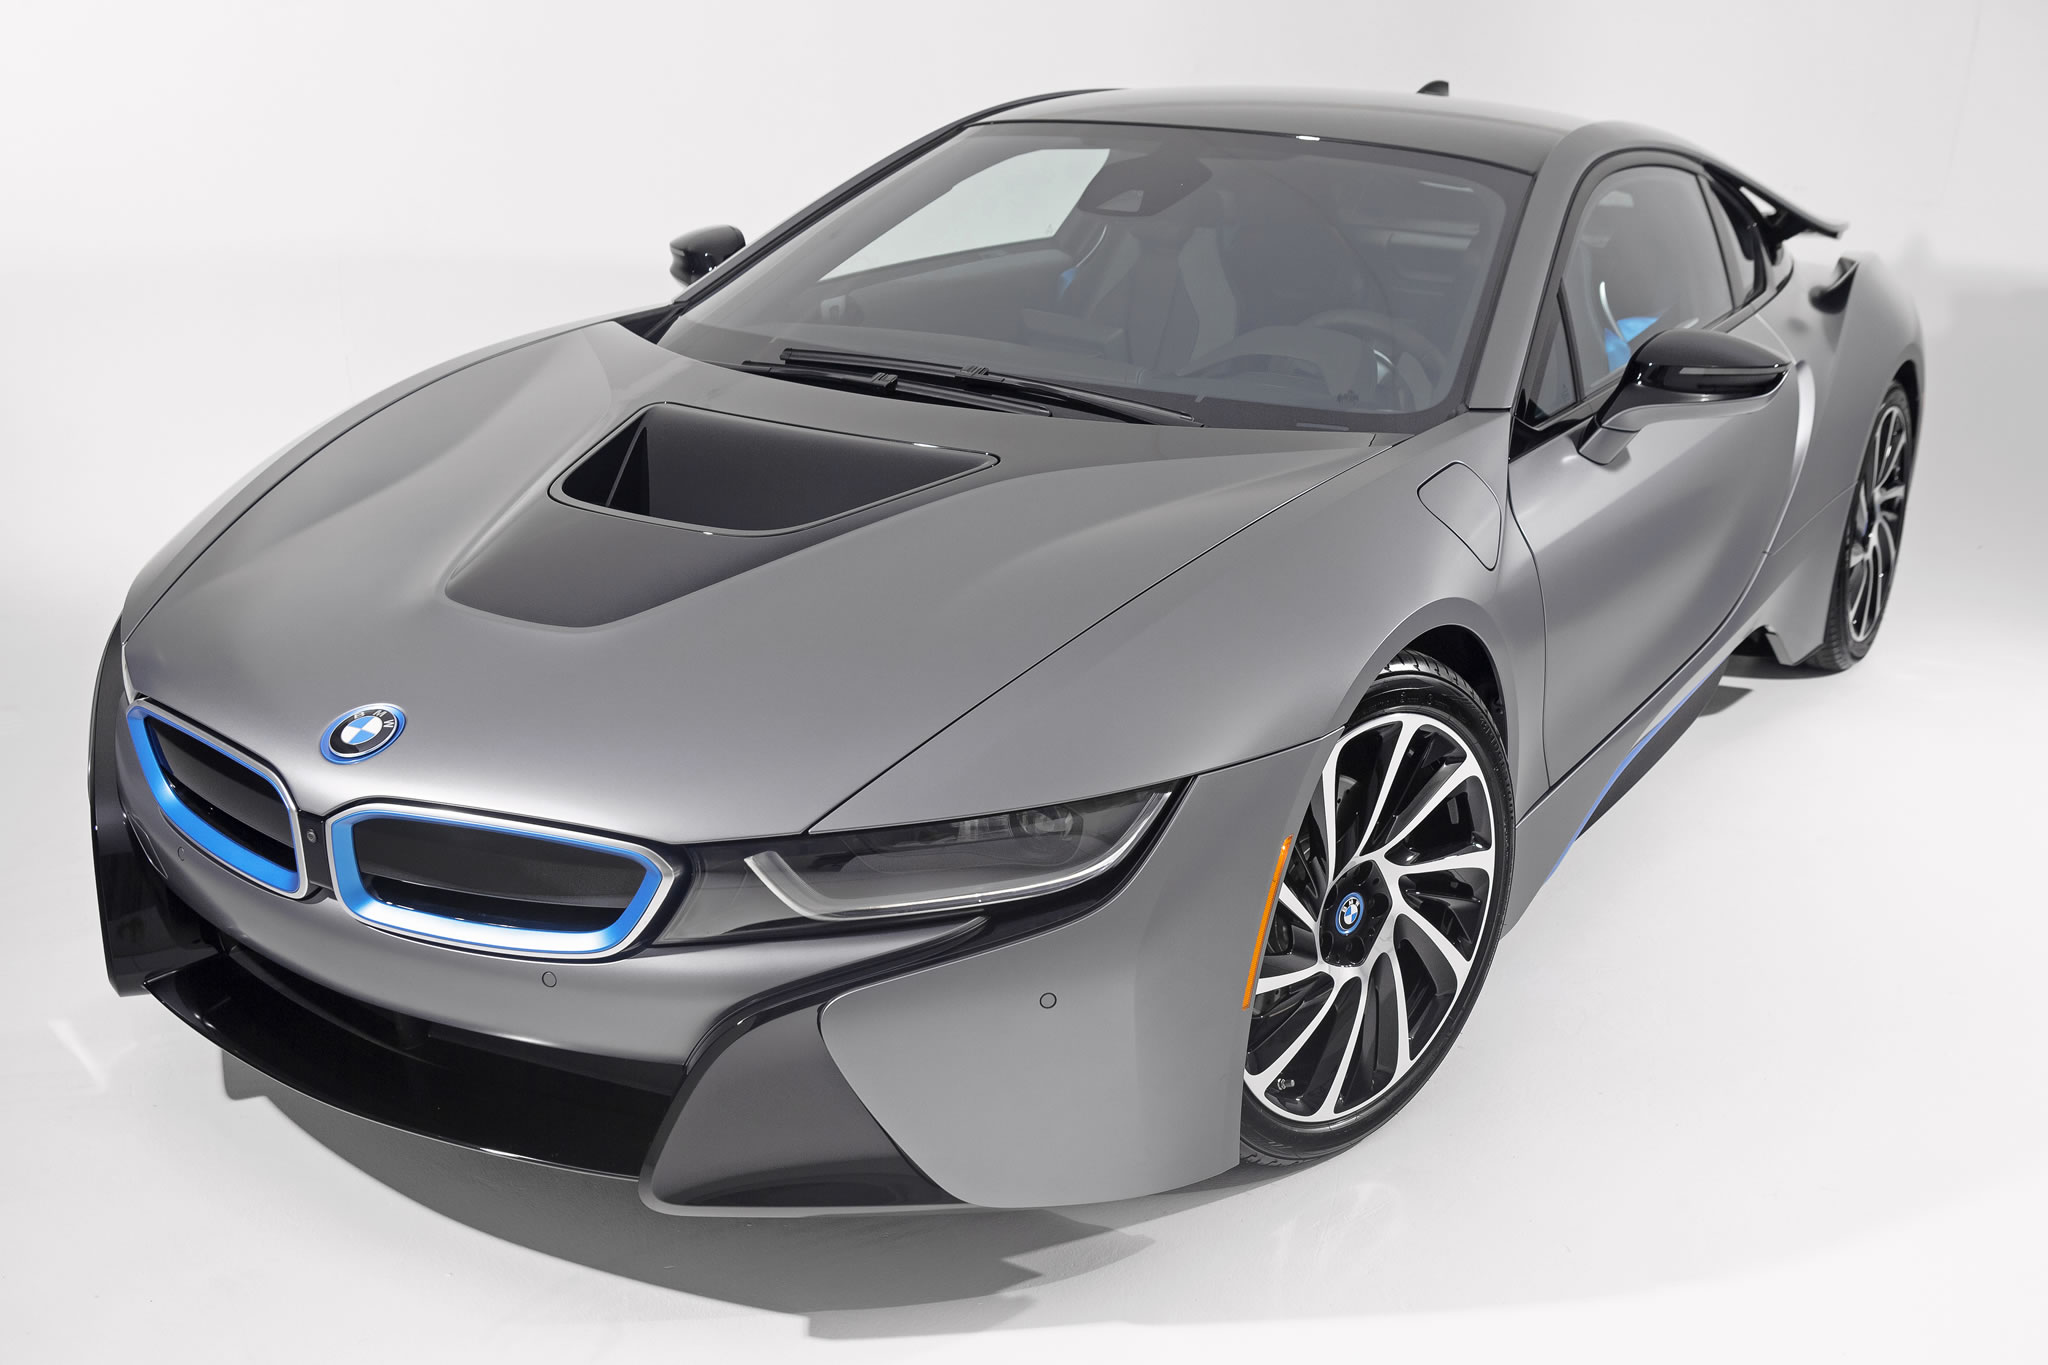 One Off Bmw I8 Frozen Grey Sold For 825 000 At Auction